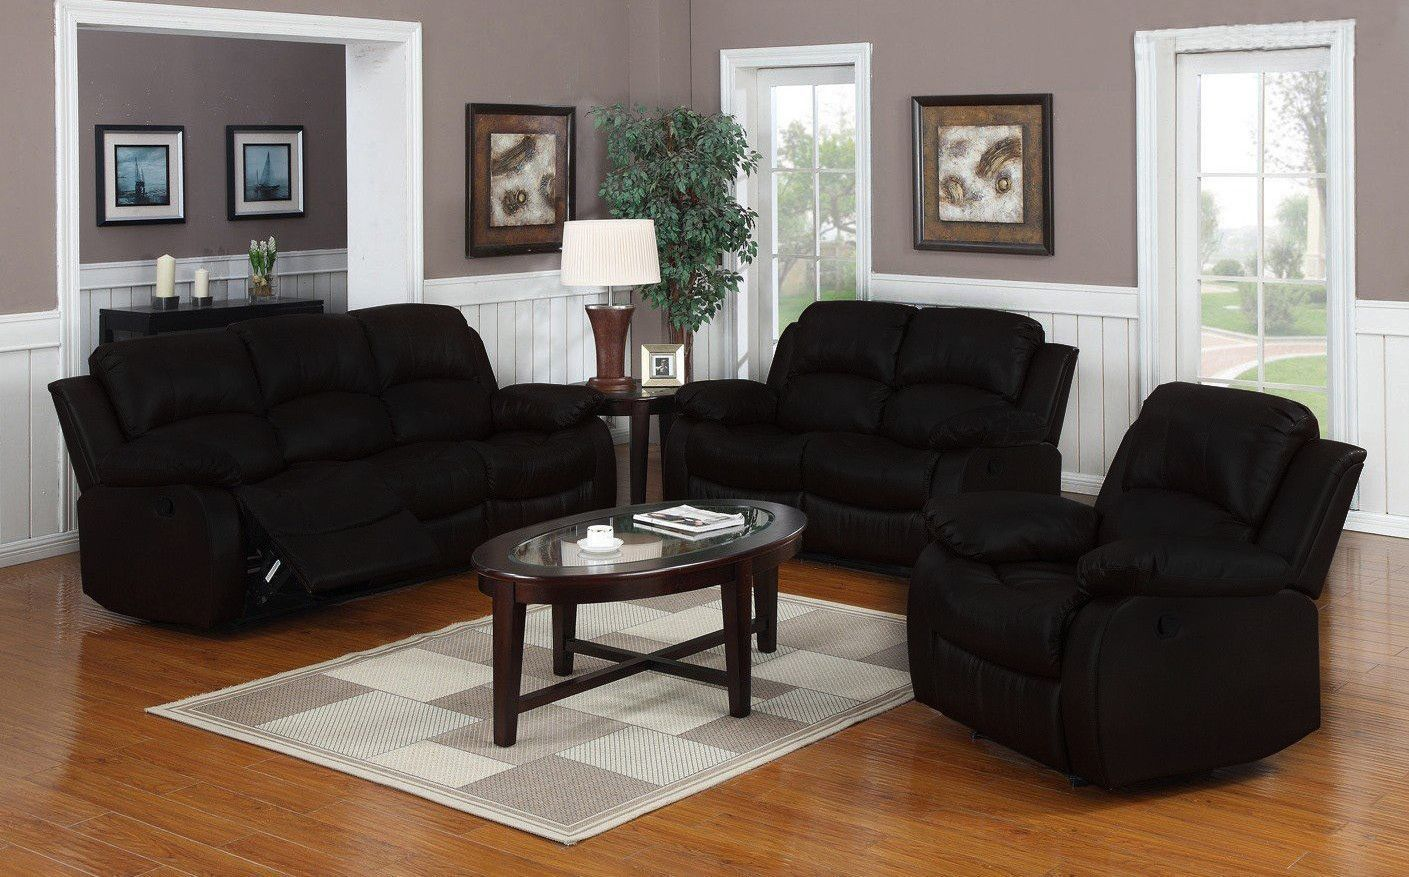 10 Most Popular Overstuffed Living Room Furniture